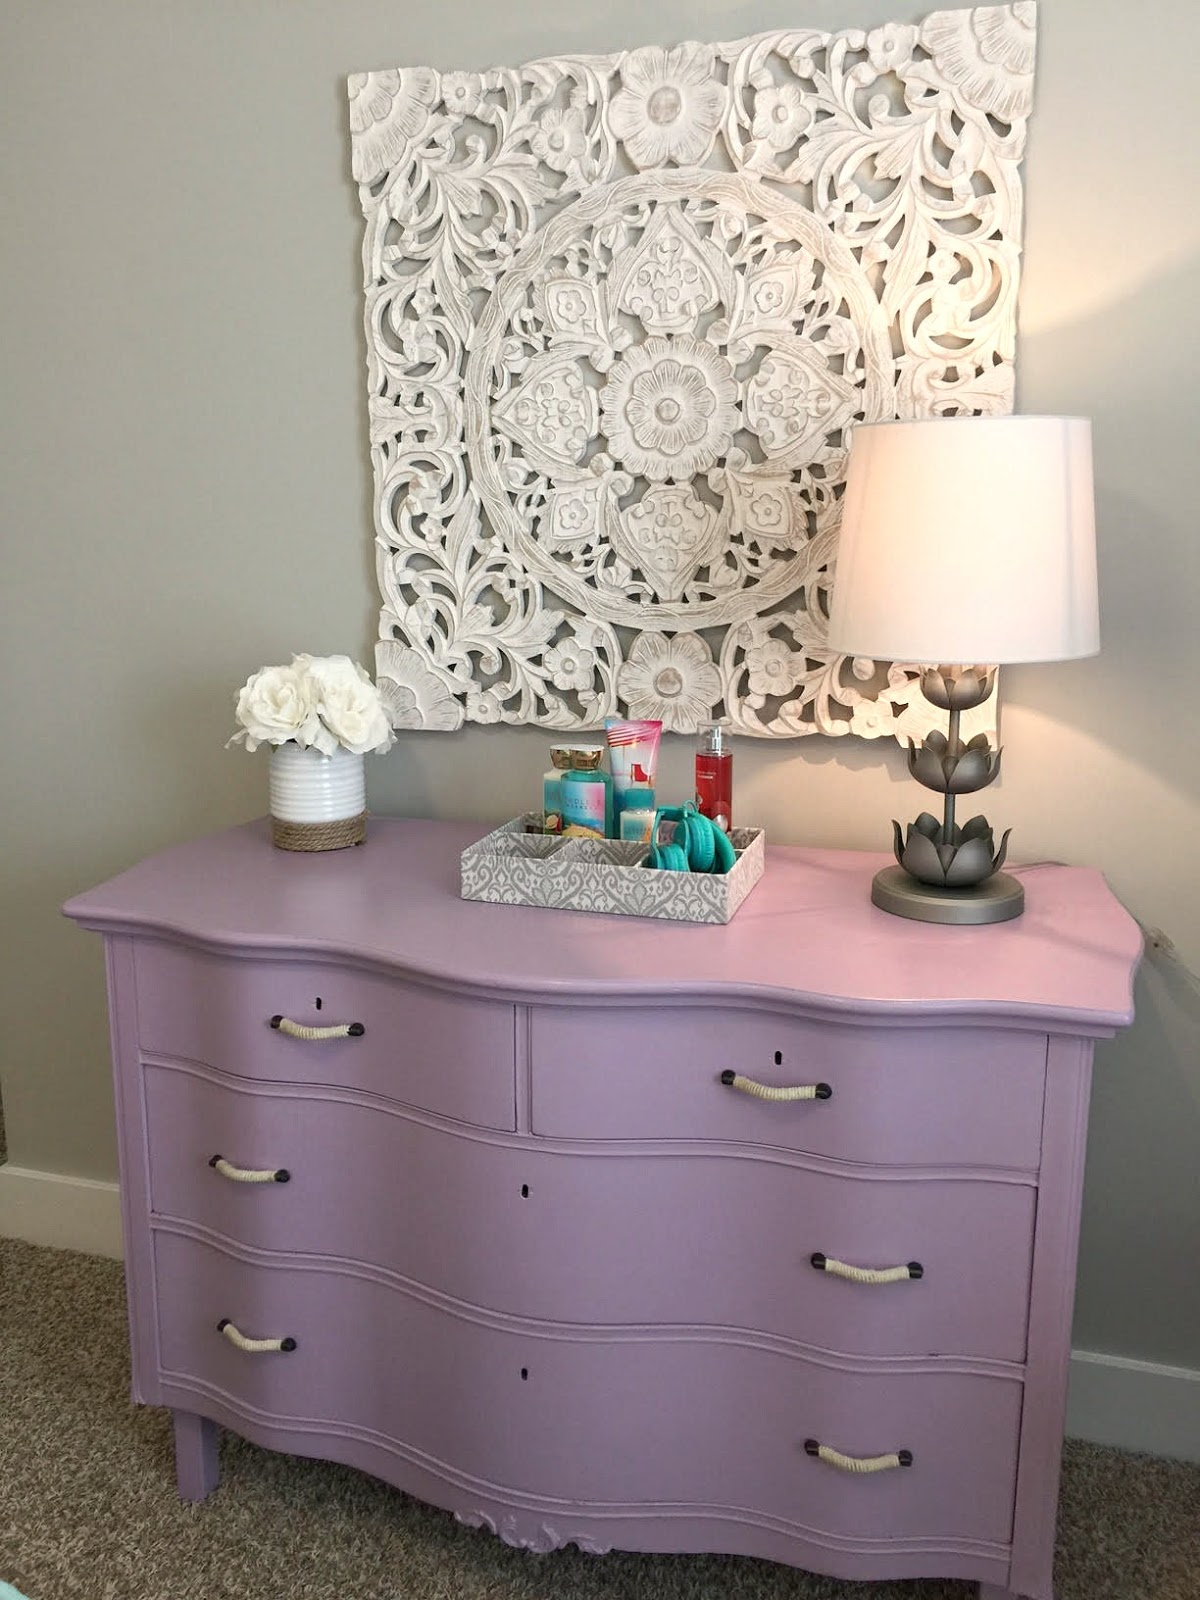 Seaside Interiors: Teen Gray, Turquoise, and Lavender ...